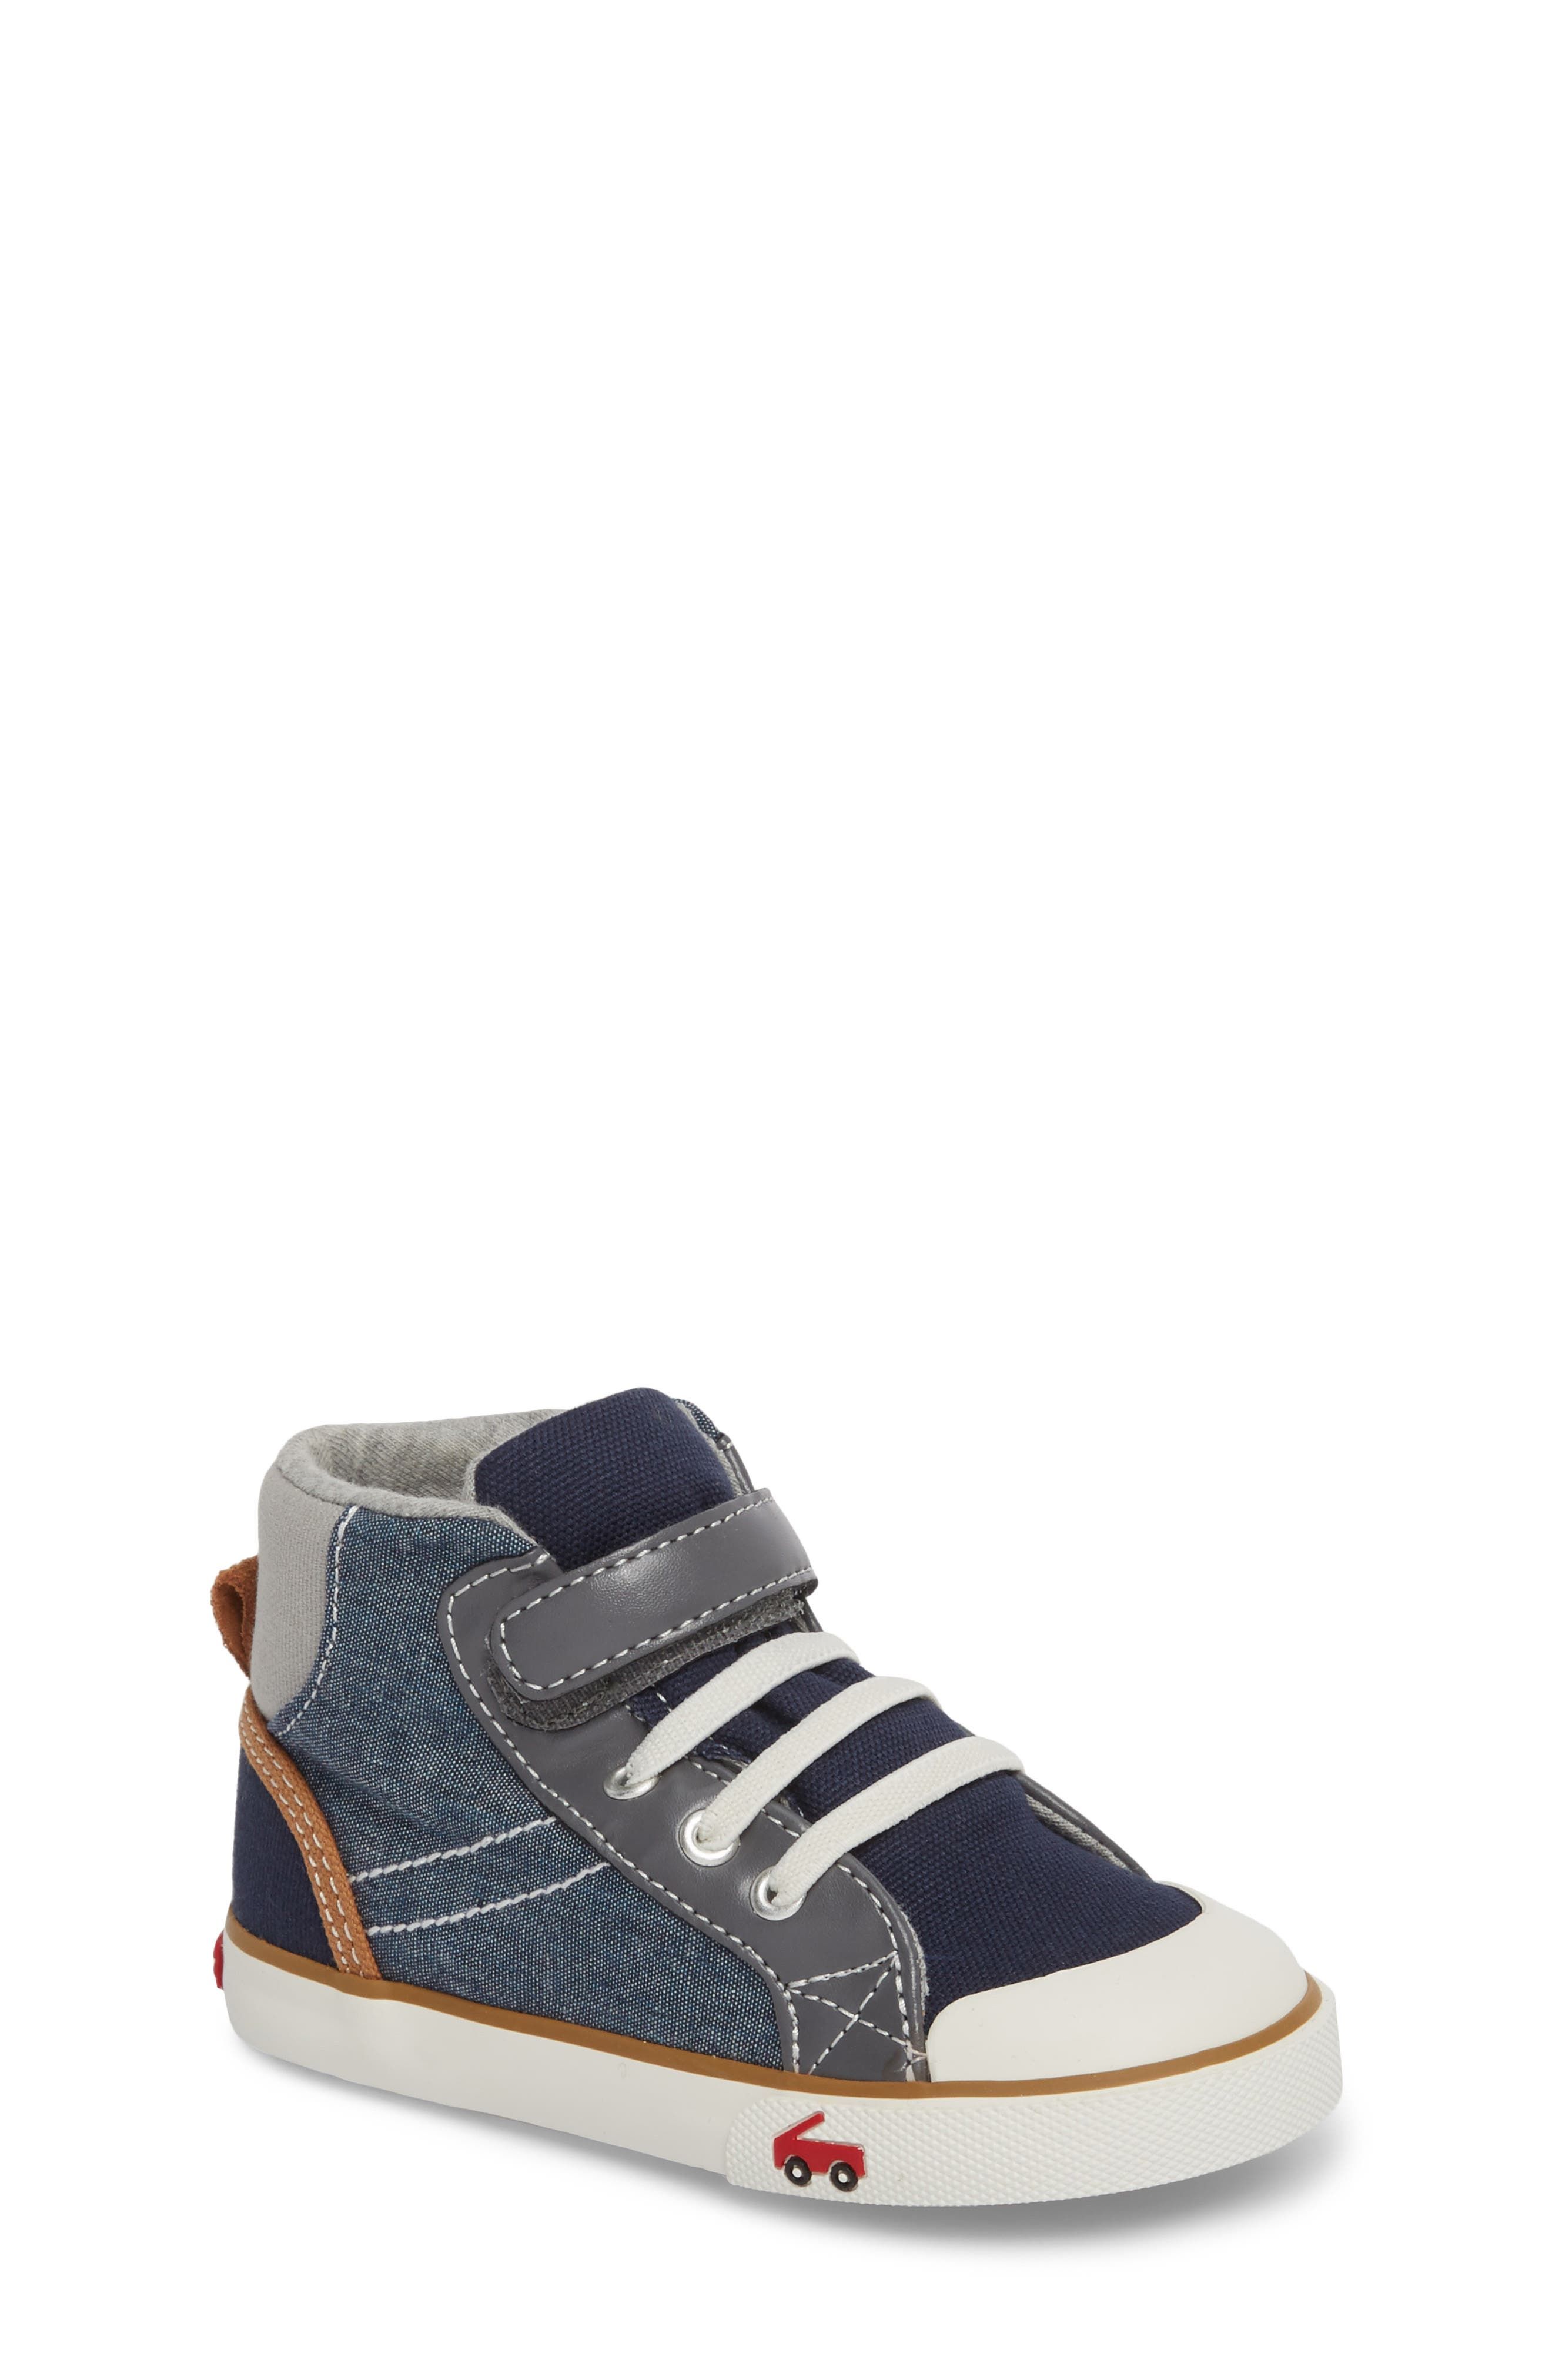 Dane Sneaker,                             Main thumbnail 1, color,                             CHAMBRAY MULTI